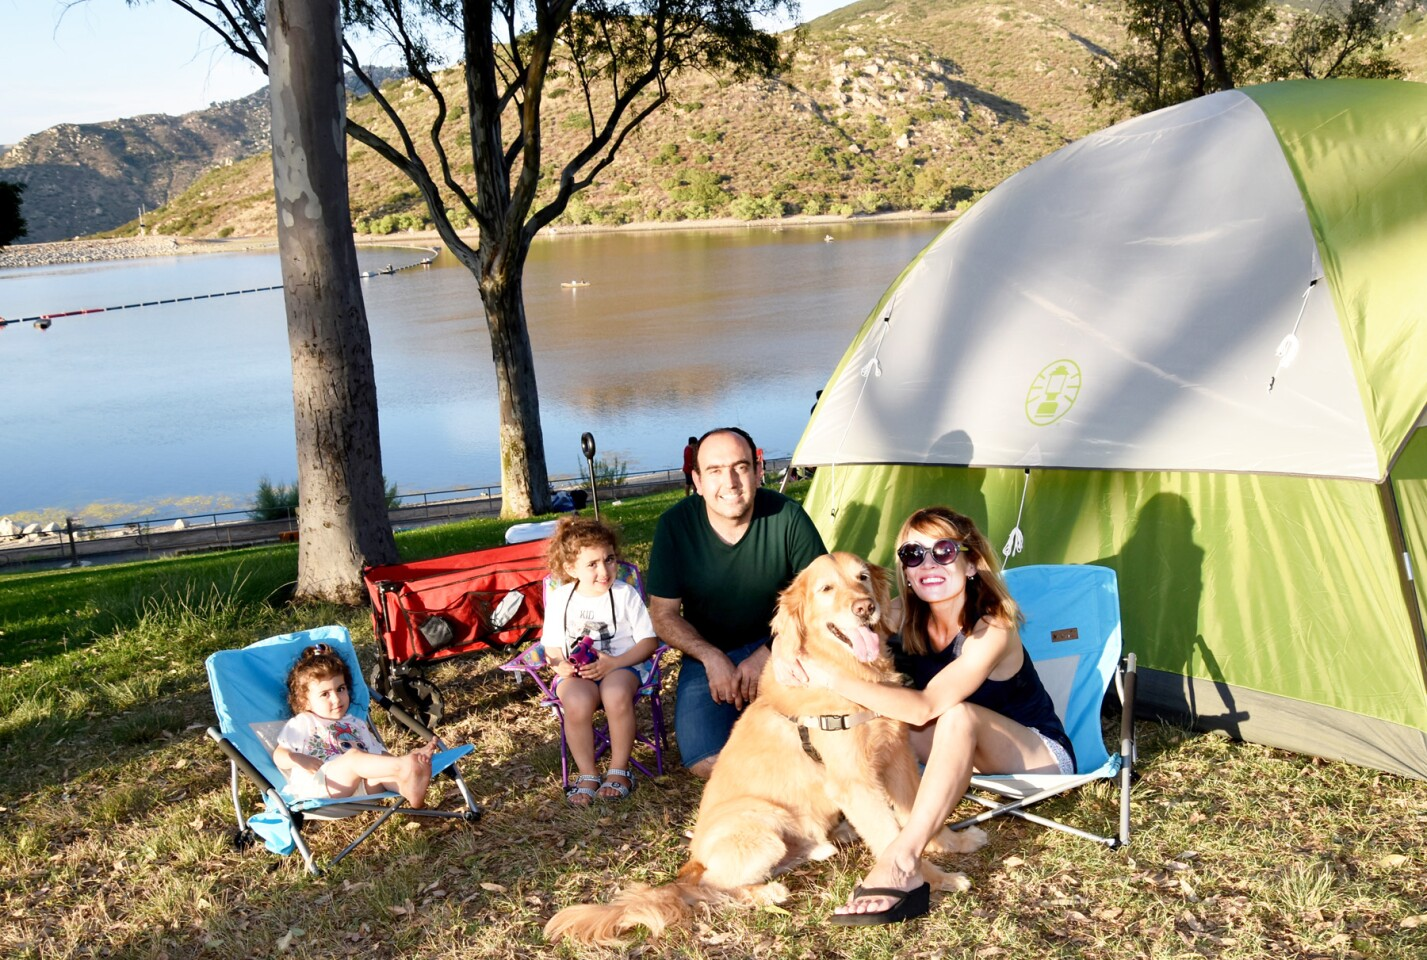 The Kayalar family ready for their campout — Marla Liv and Mona Rae with their parents, Alihanpolat and Dee, plus dog, Monty.